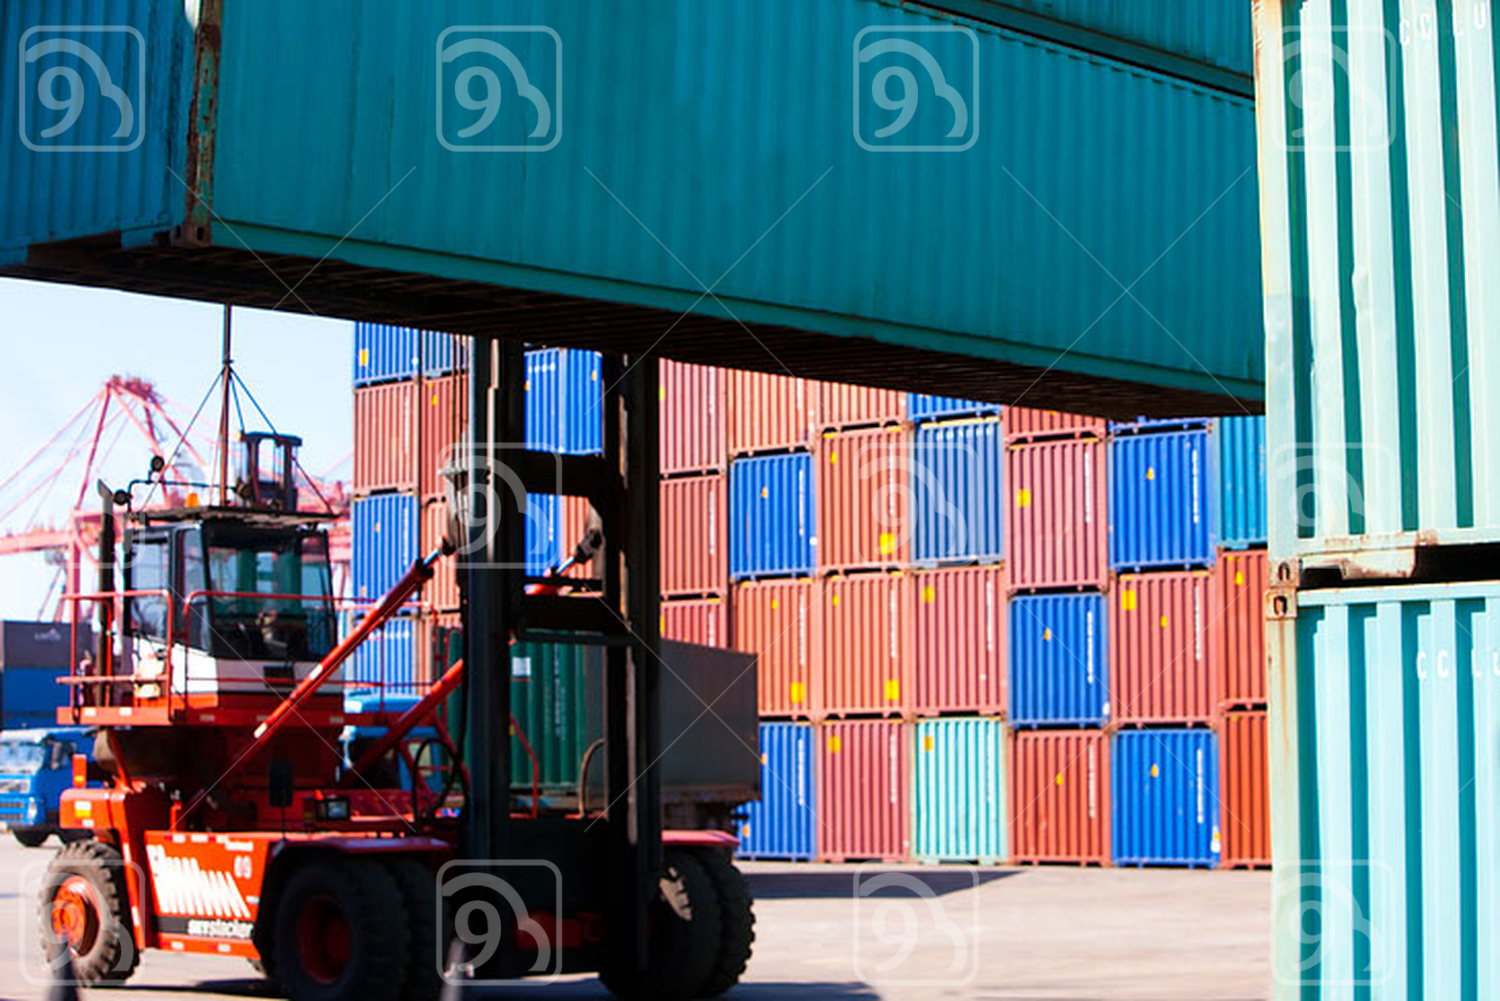 Truck lifting cargo containers